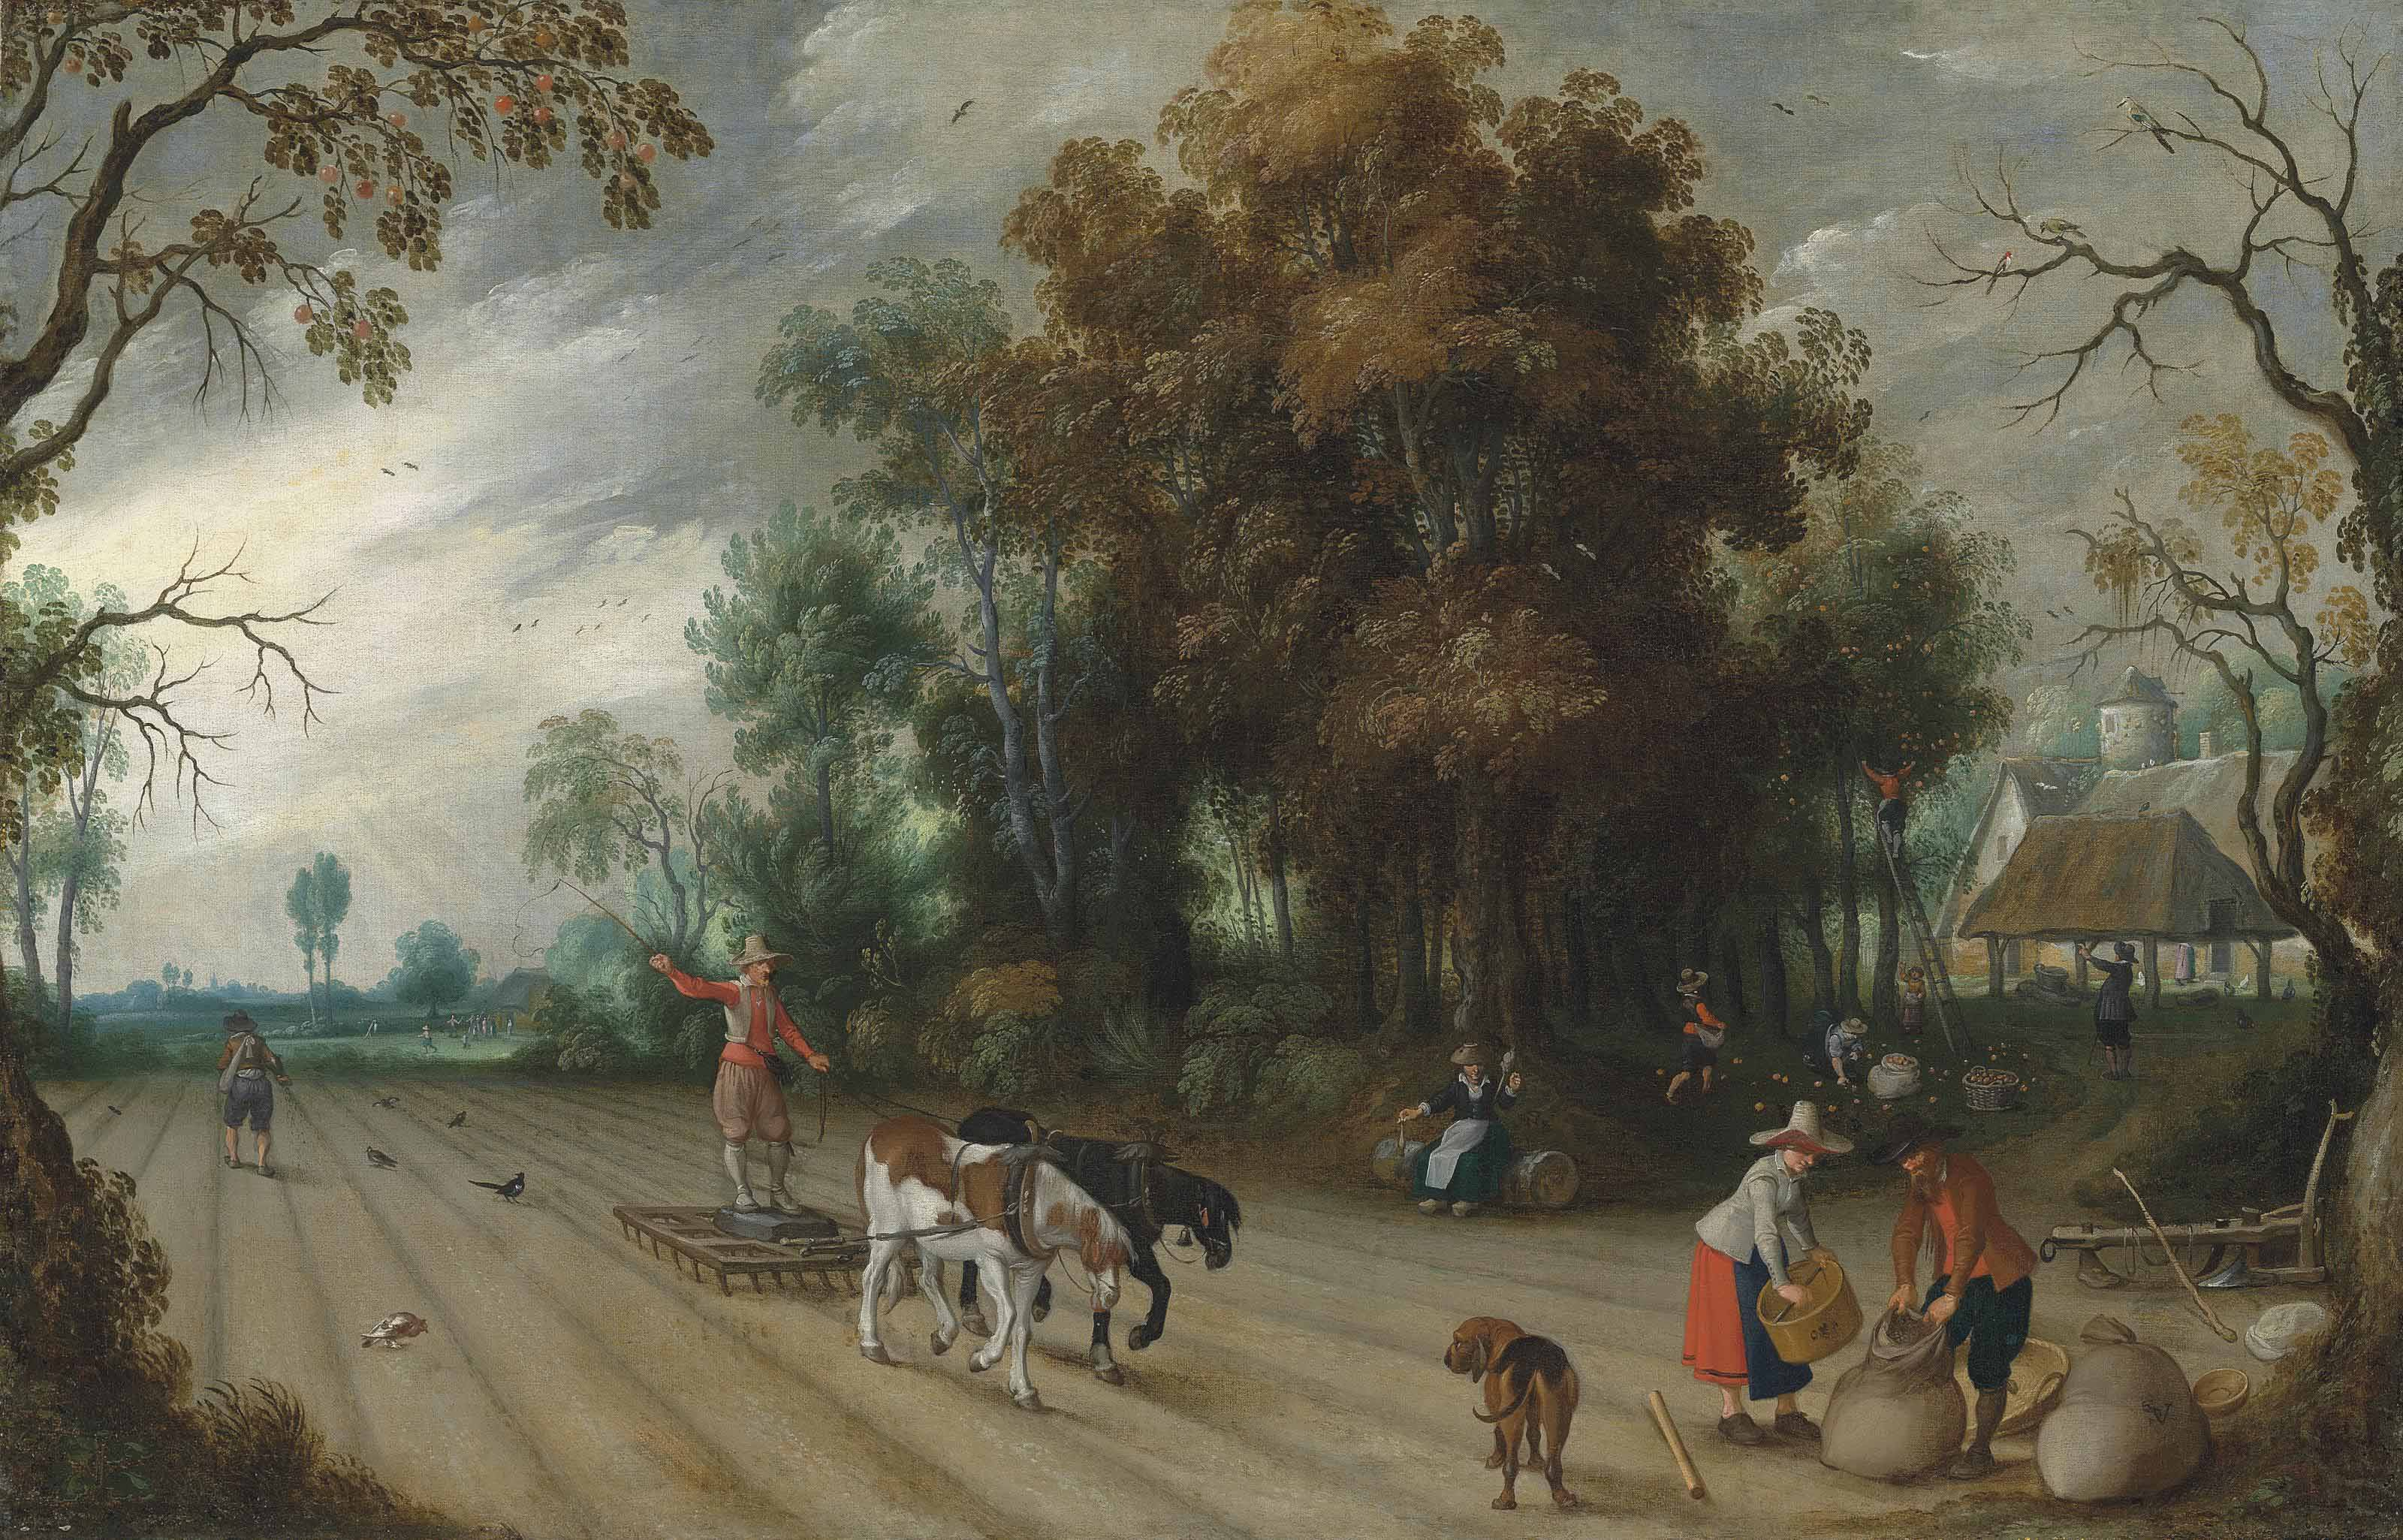 An Allegory of Autumn: A farmer harrowing a field while another sows, with peasants gathering apples in an orchard